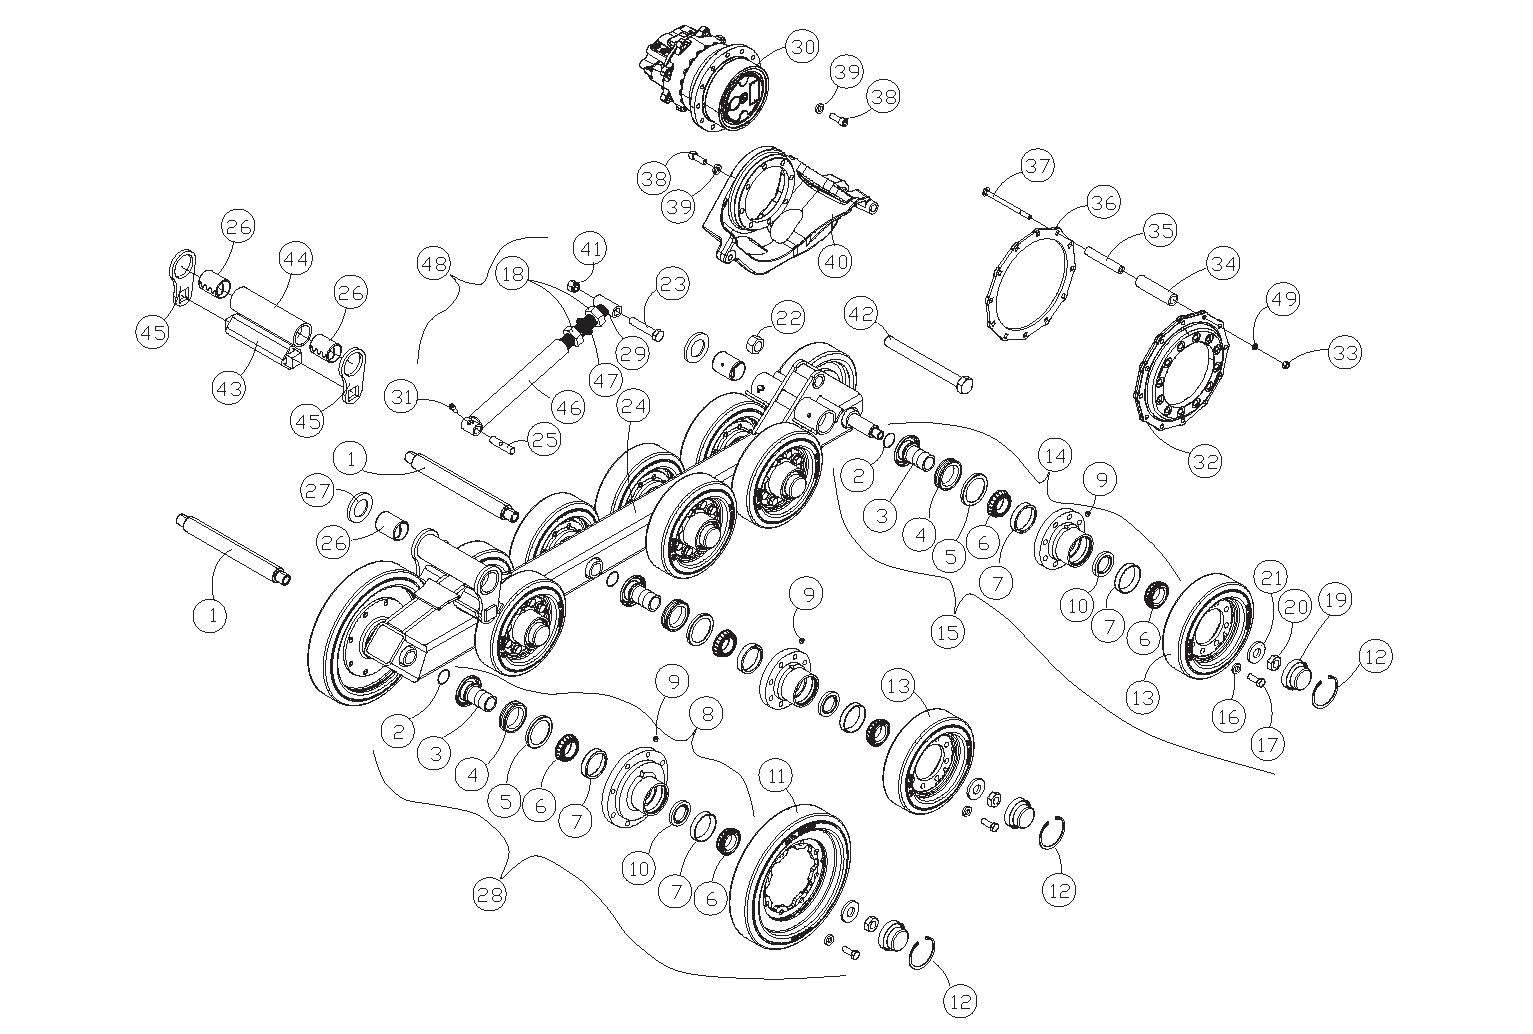 Diagram 14-B Undercarriage Assembly - Left Side